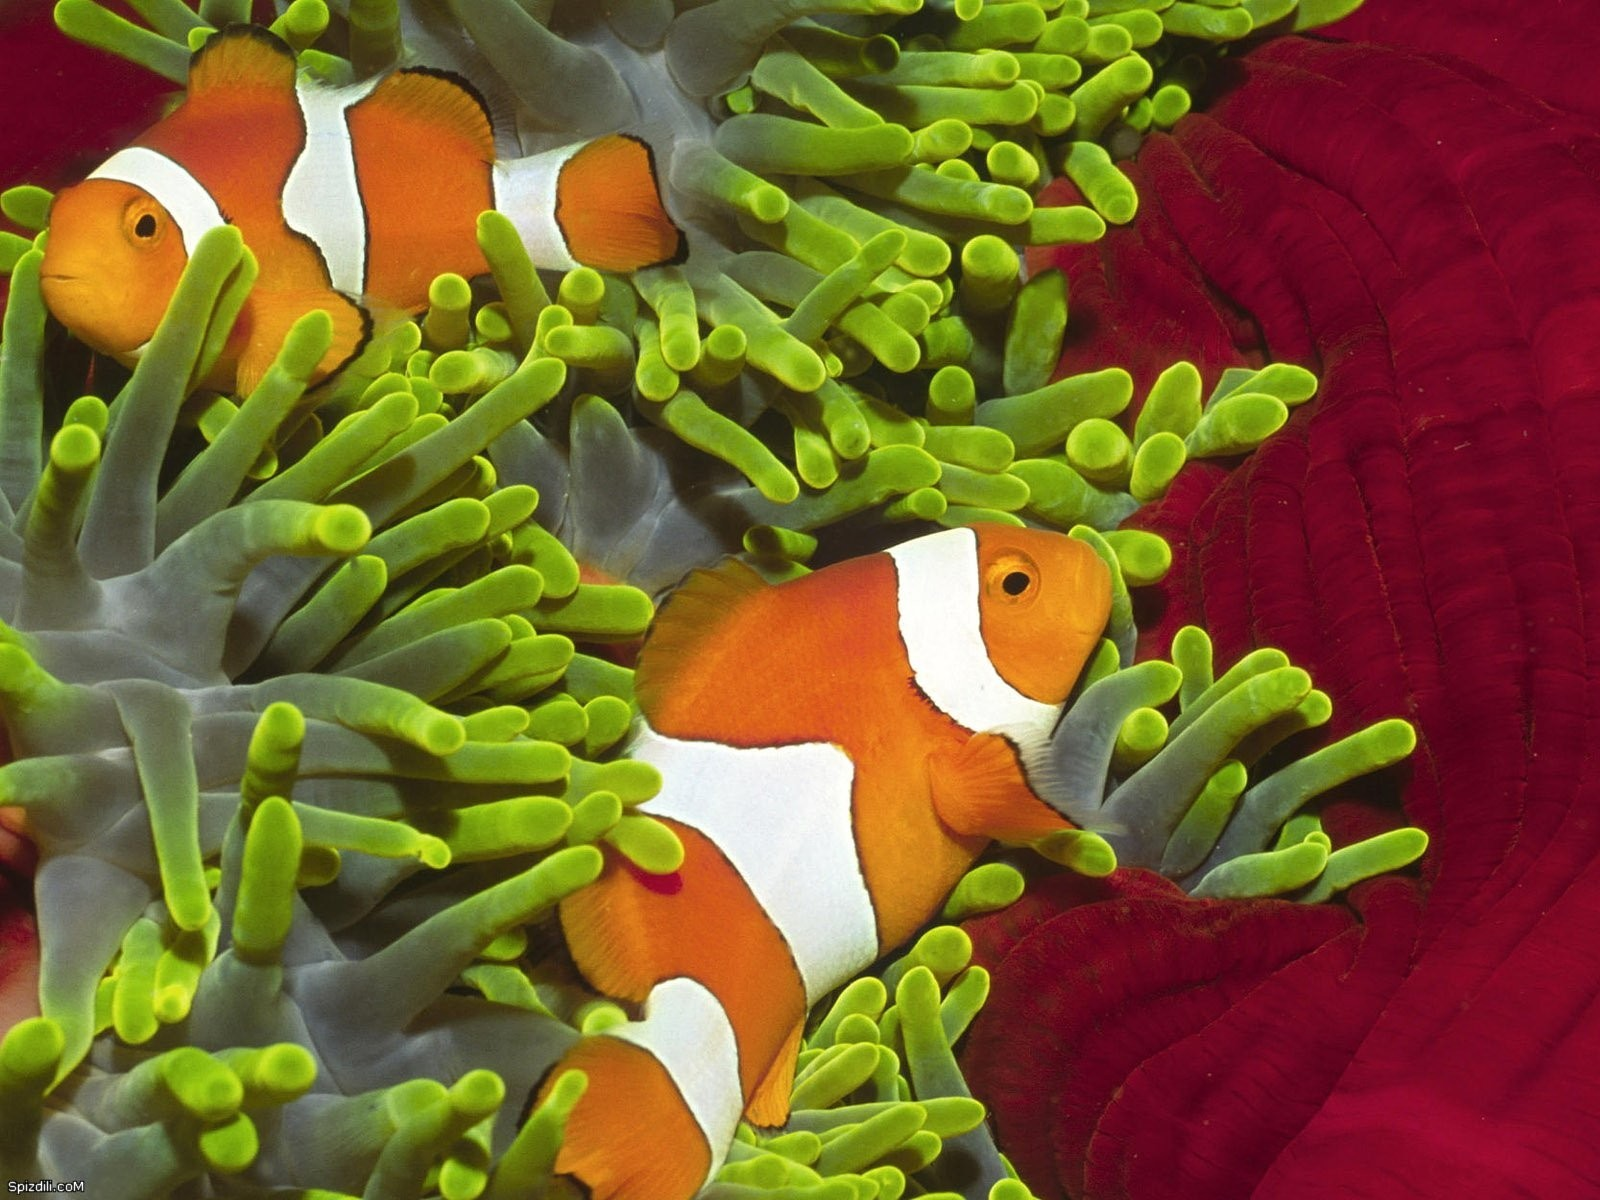 fish clownfish sea anemones HD Wallpaper